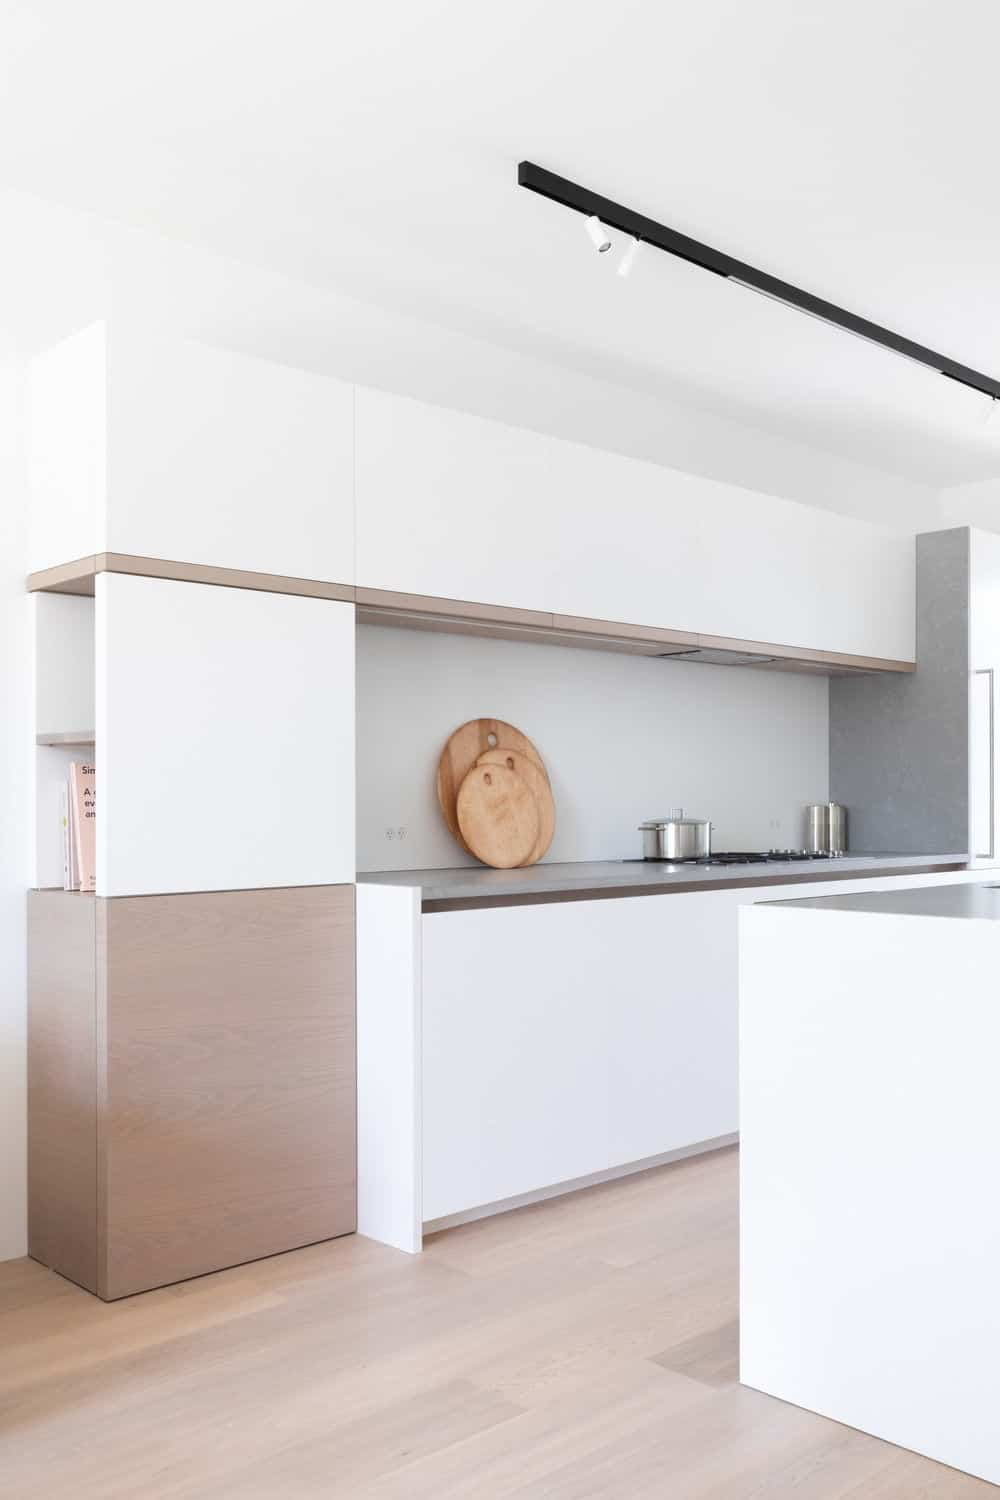 Another view of the kitchen featuring its white walls, smooth counters and white walls. Photo credit: Ema Peter